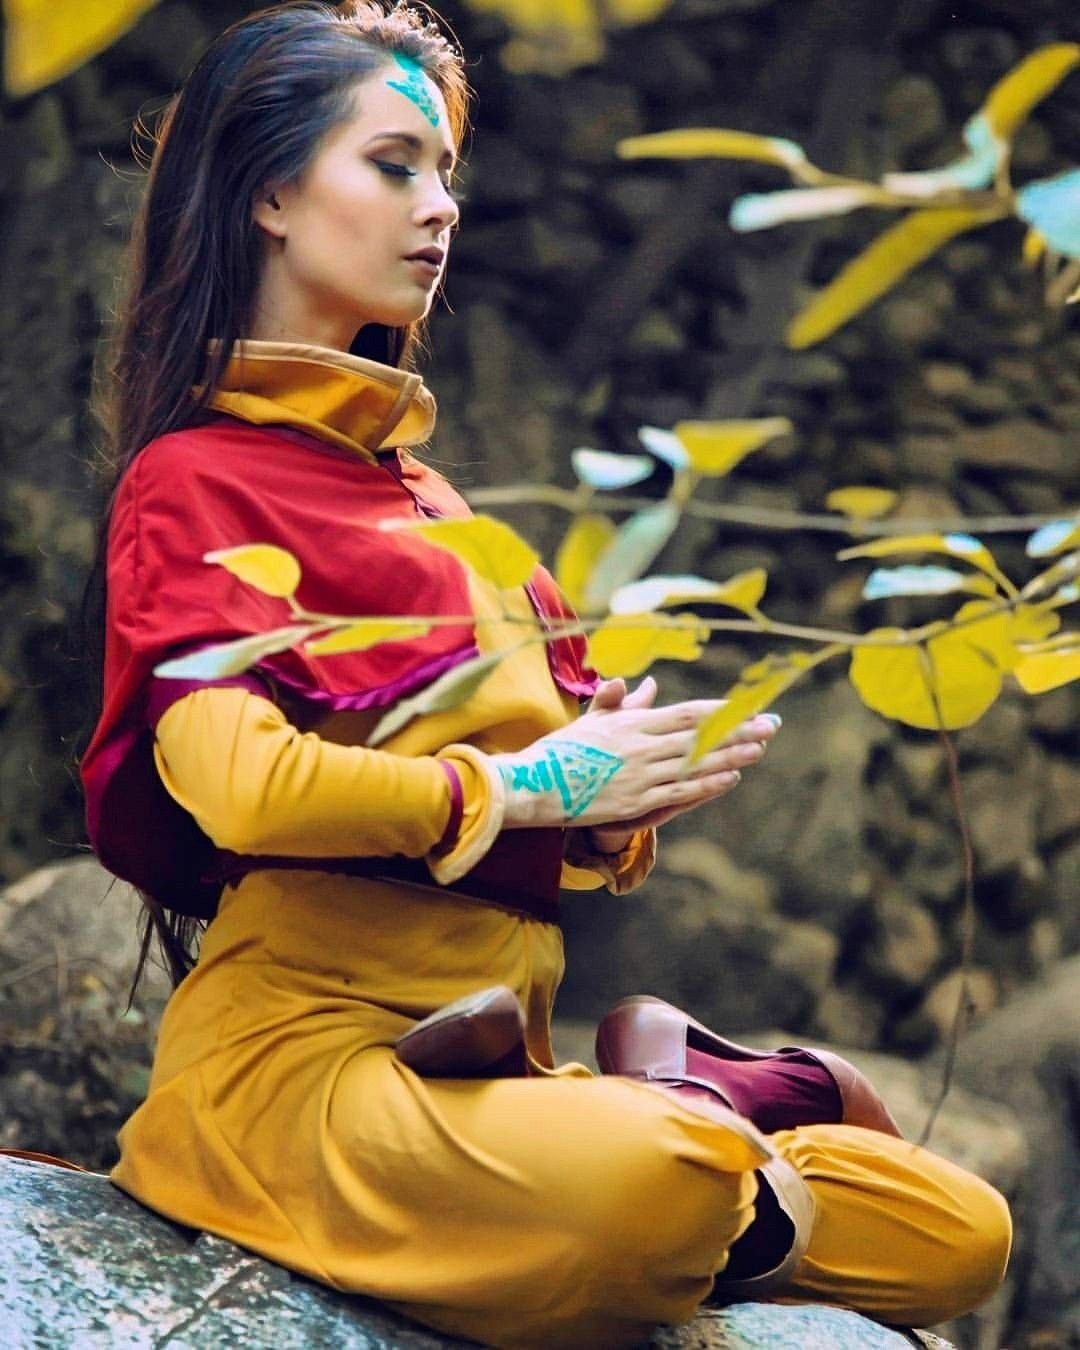 Hot Air Bender #avatar #avatarthelastbender #anime #cartoon #cosplaygirl #cosplaylife #costume #cosplaybeauty #cosplaygirls #beautiful #gorgeous #sexy #sexycosplay #pretty #damn #perfect #photographysouls